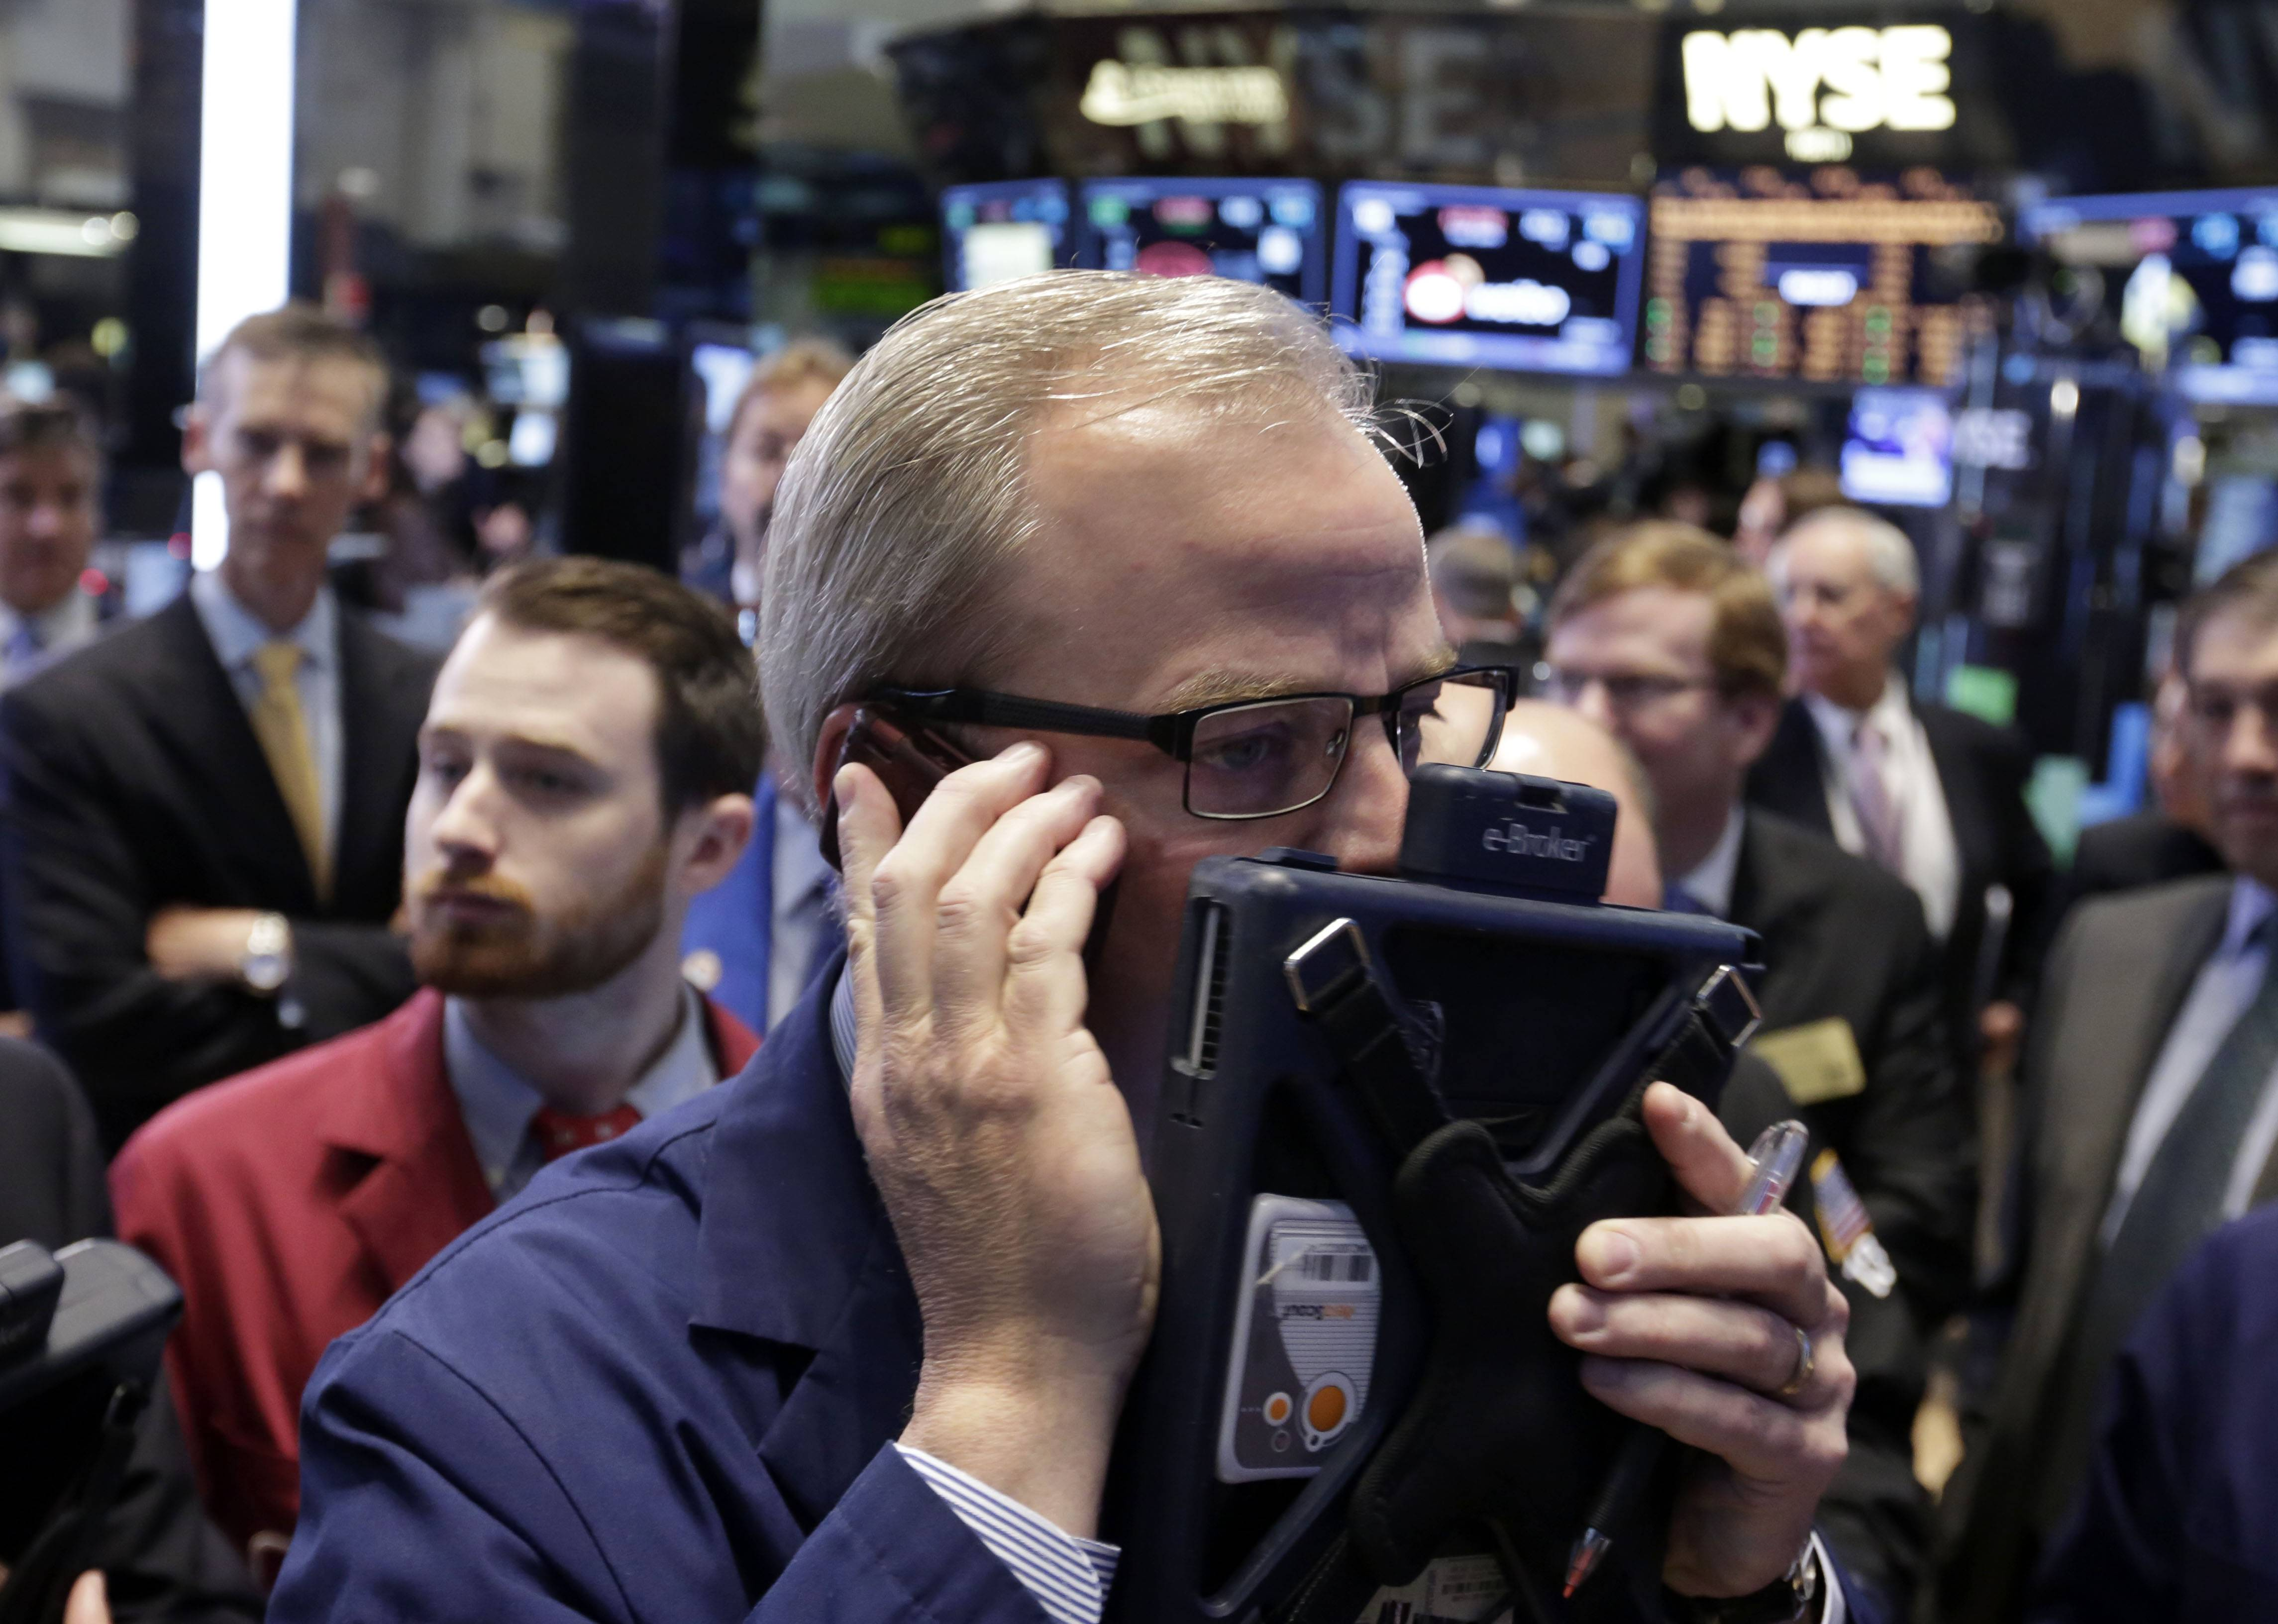 U.S. stocks fell broadly Tuesday as investors found little to cheer in corporate earnings reports. A plunge in Twitter led Internet companies sharply lower.